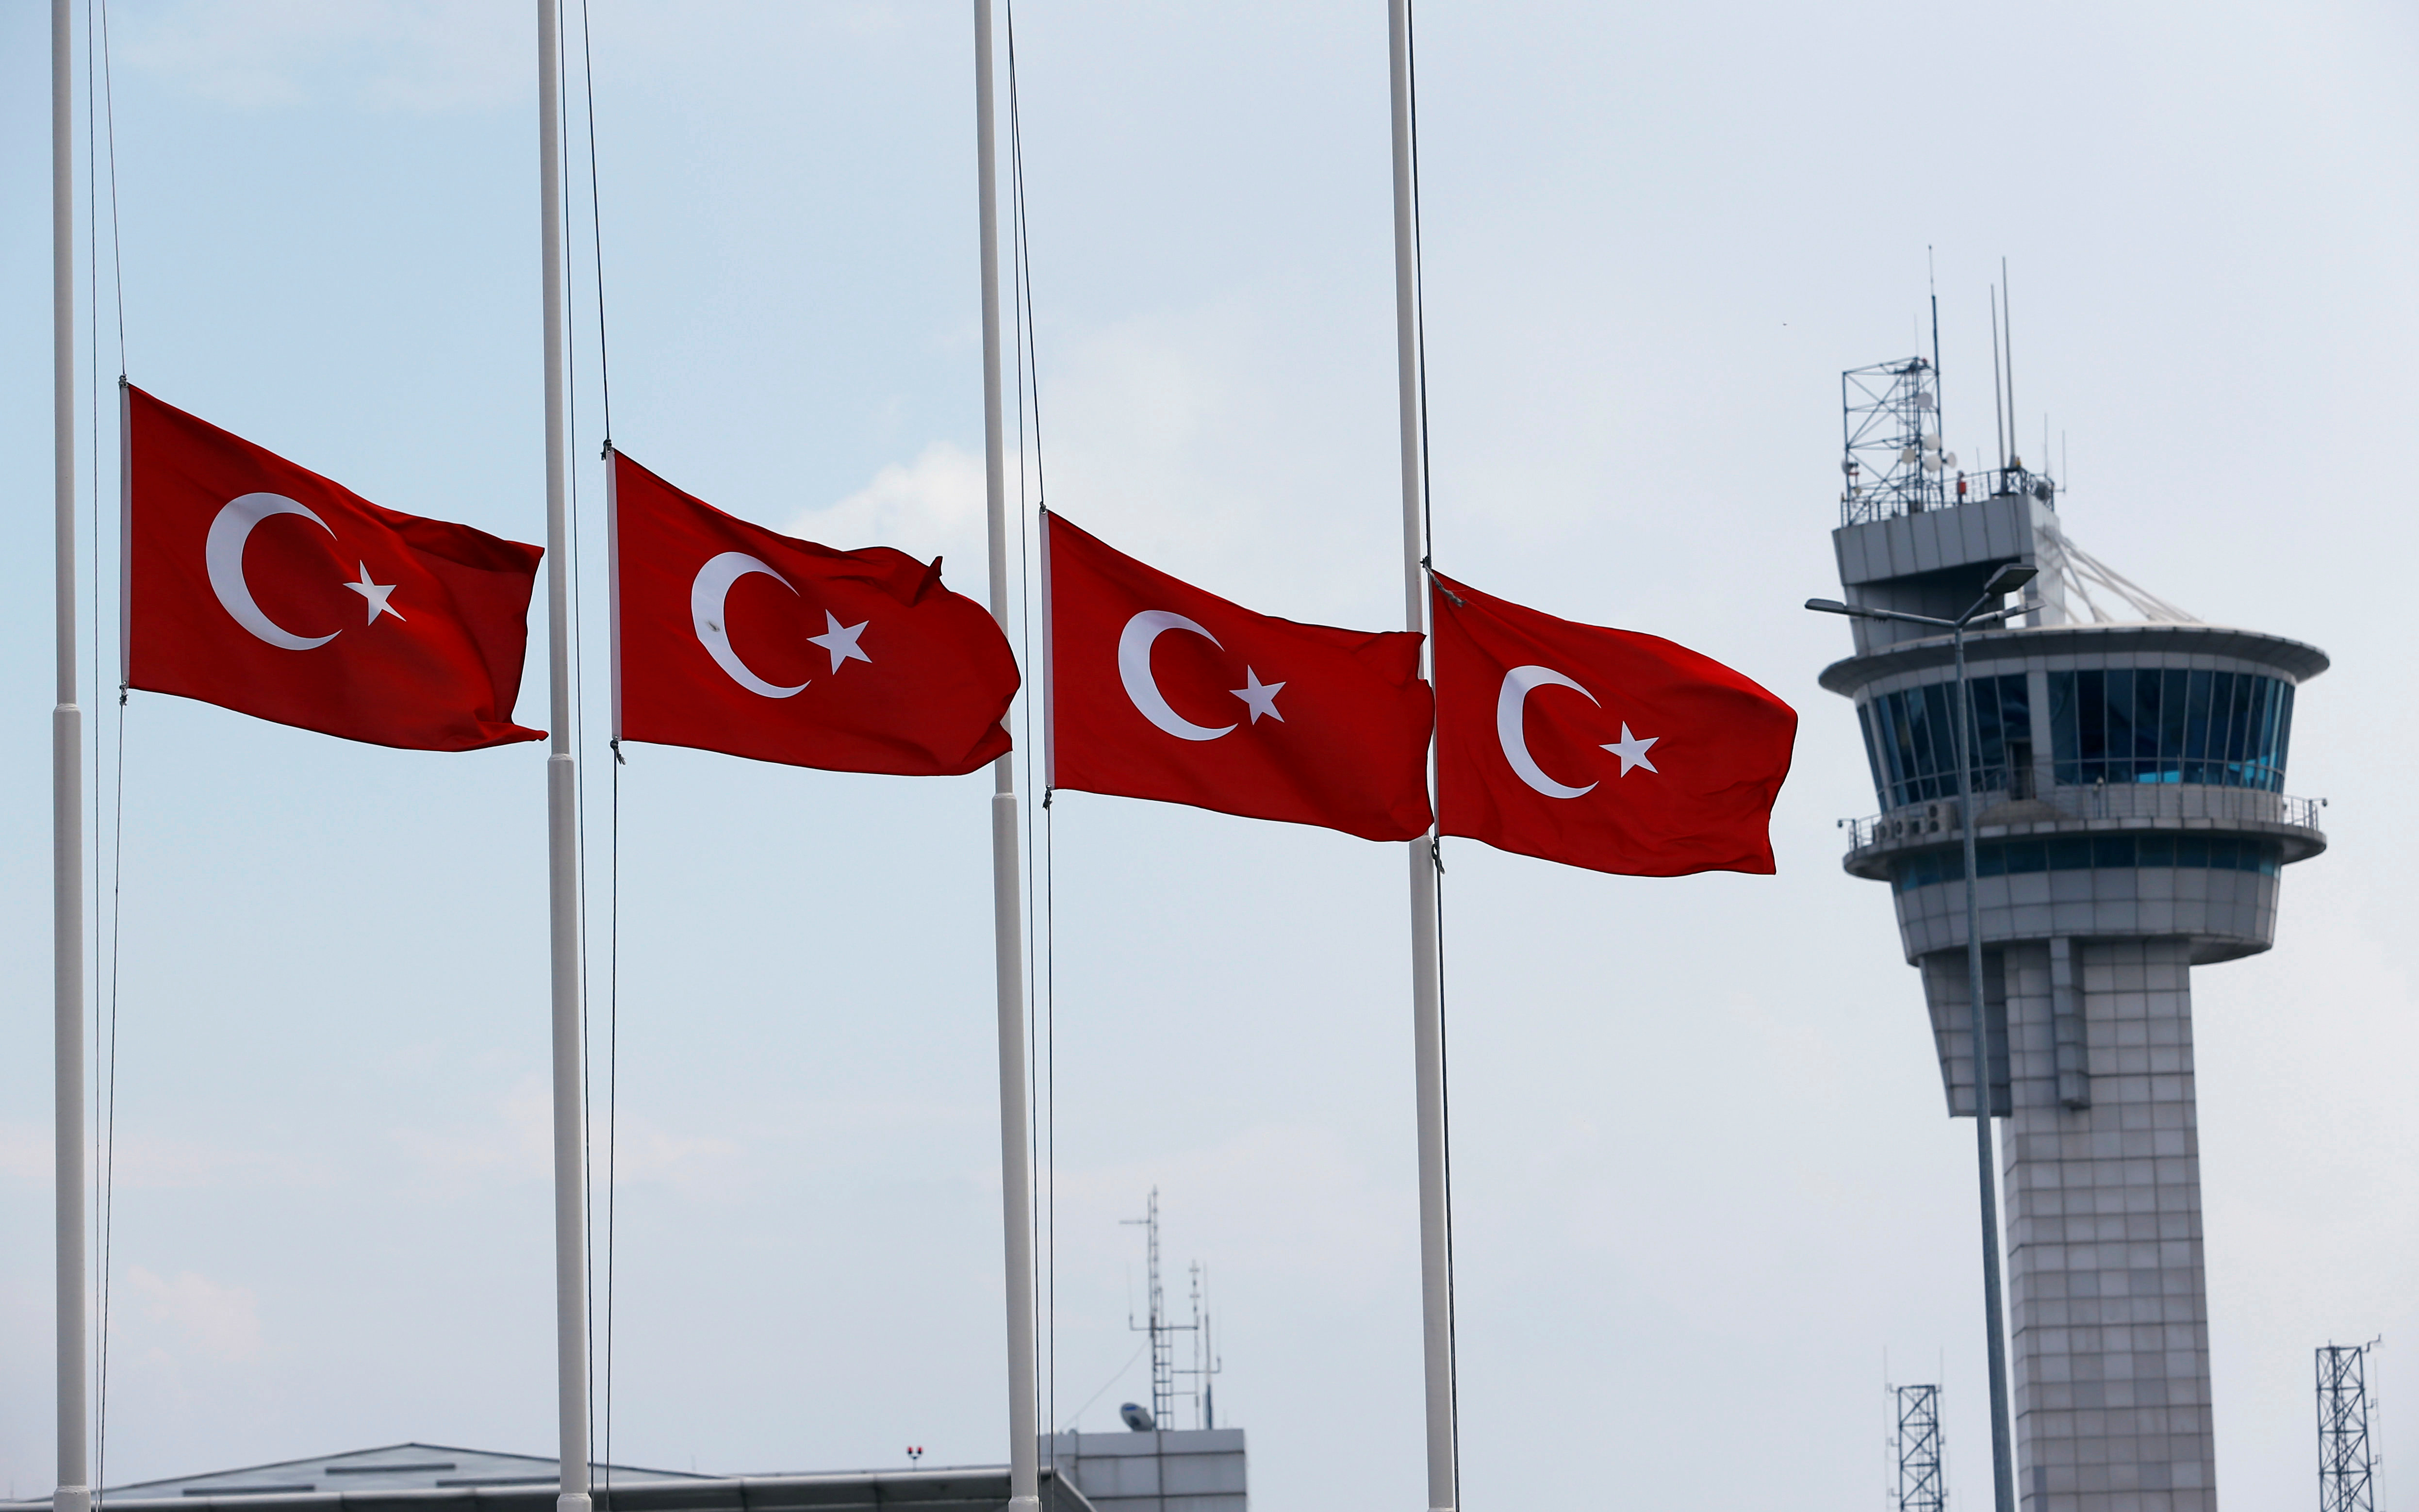 Reuters/Murad Seze - Turkish flags, with the control tower in the background, fly at half mast at the country's largest airport, Istanbul Ataturk, following yesterday's blast in Istanbul, Turkey, June 29, 2016